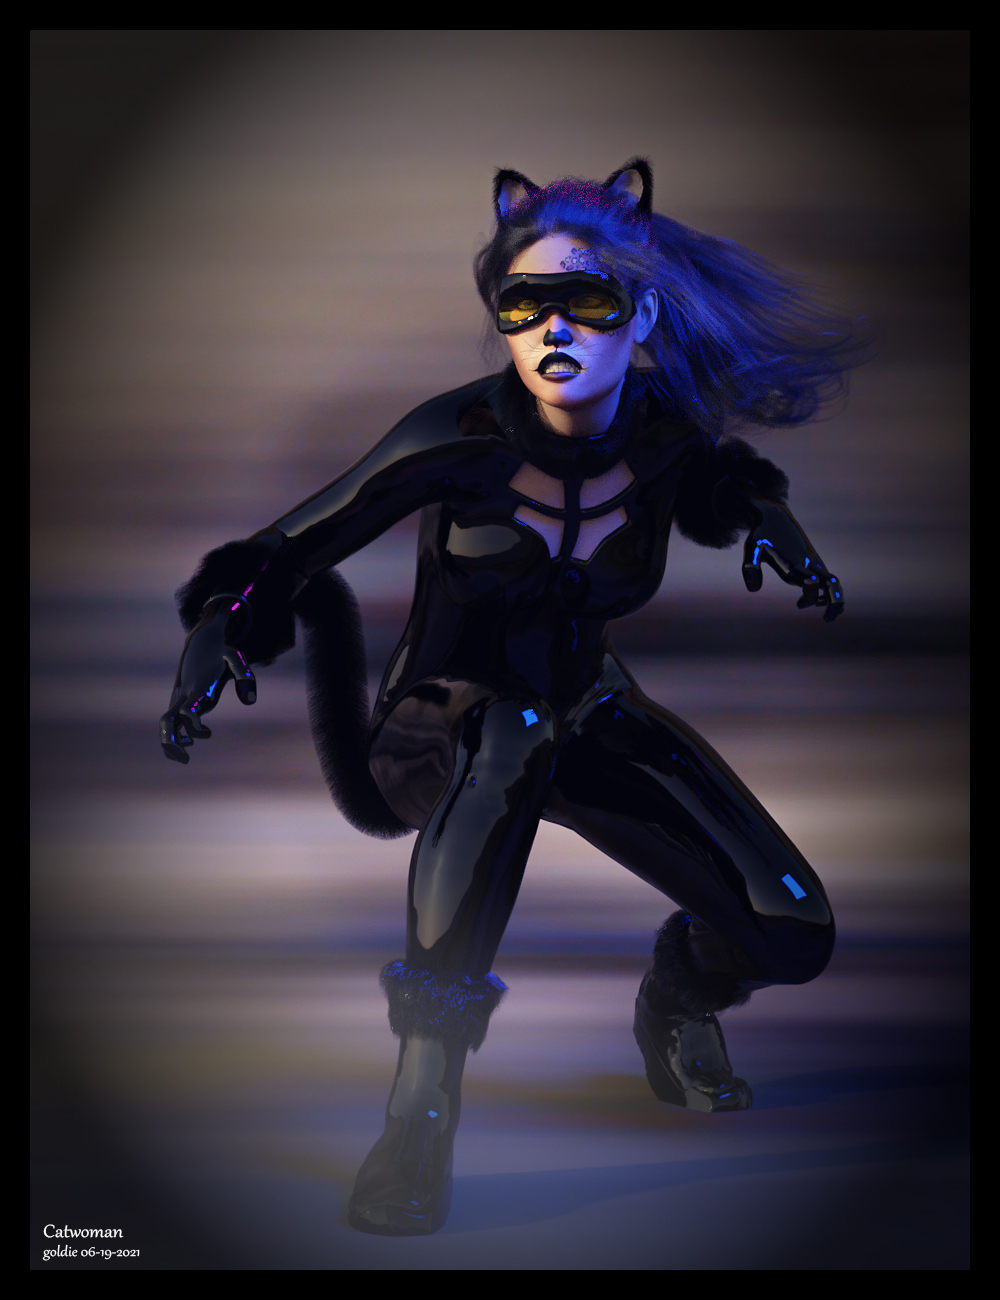 Catwomam by goldie